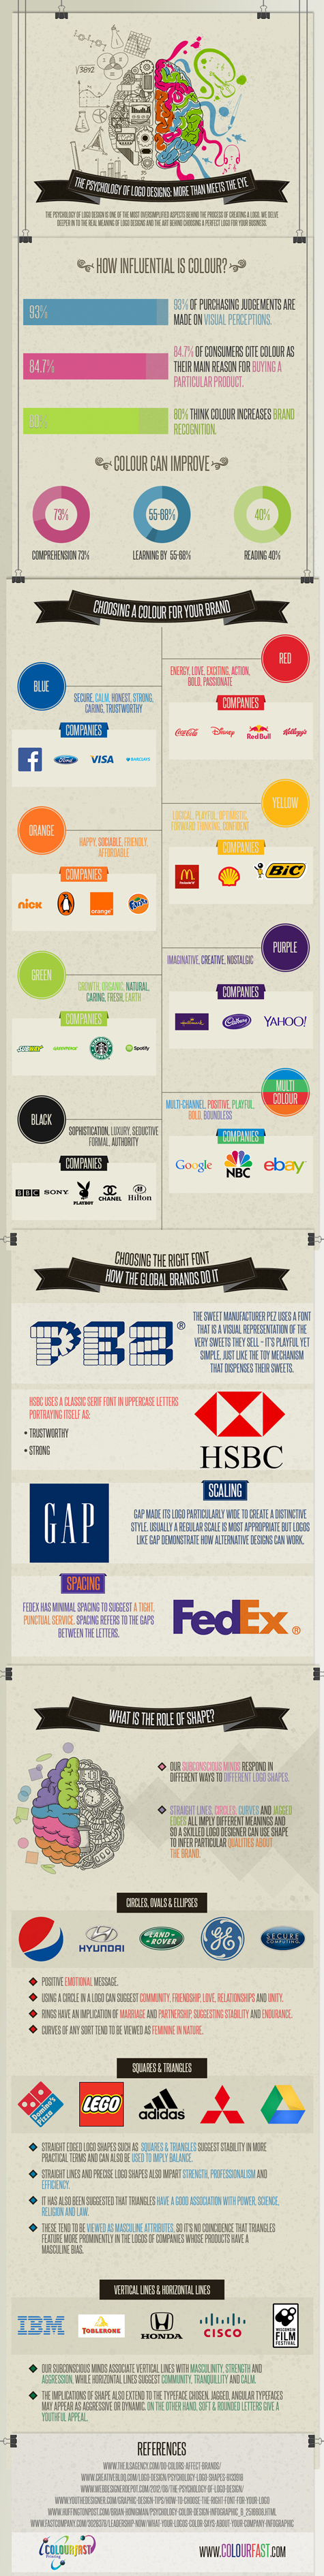 Discover How The Look Of Your Logo Both Colors and Shapes Perception [Infographic]